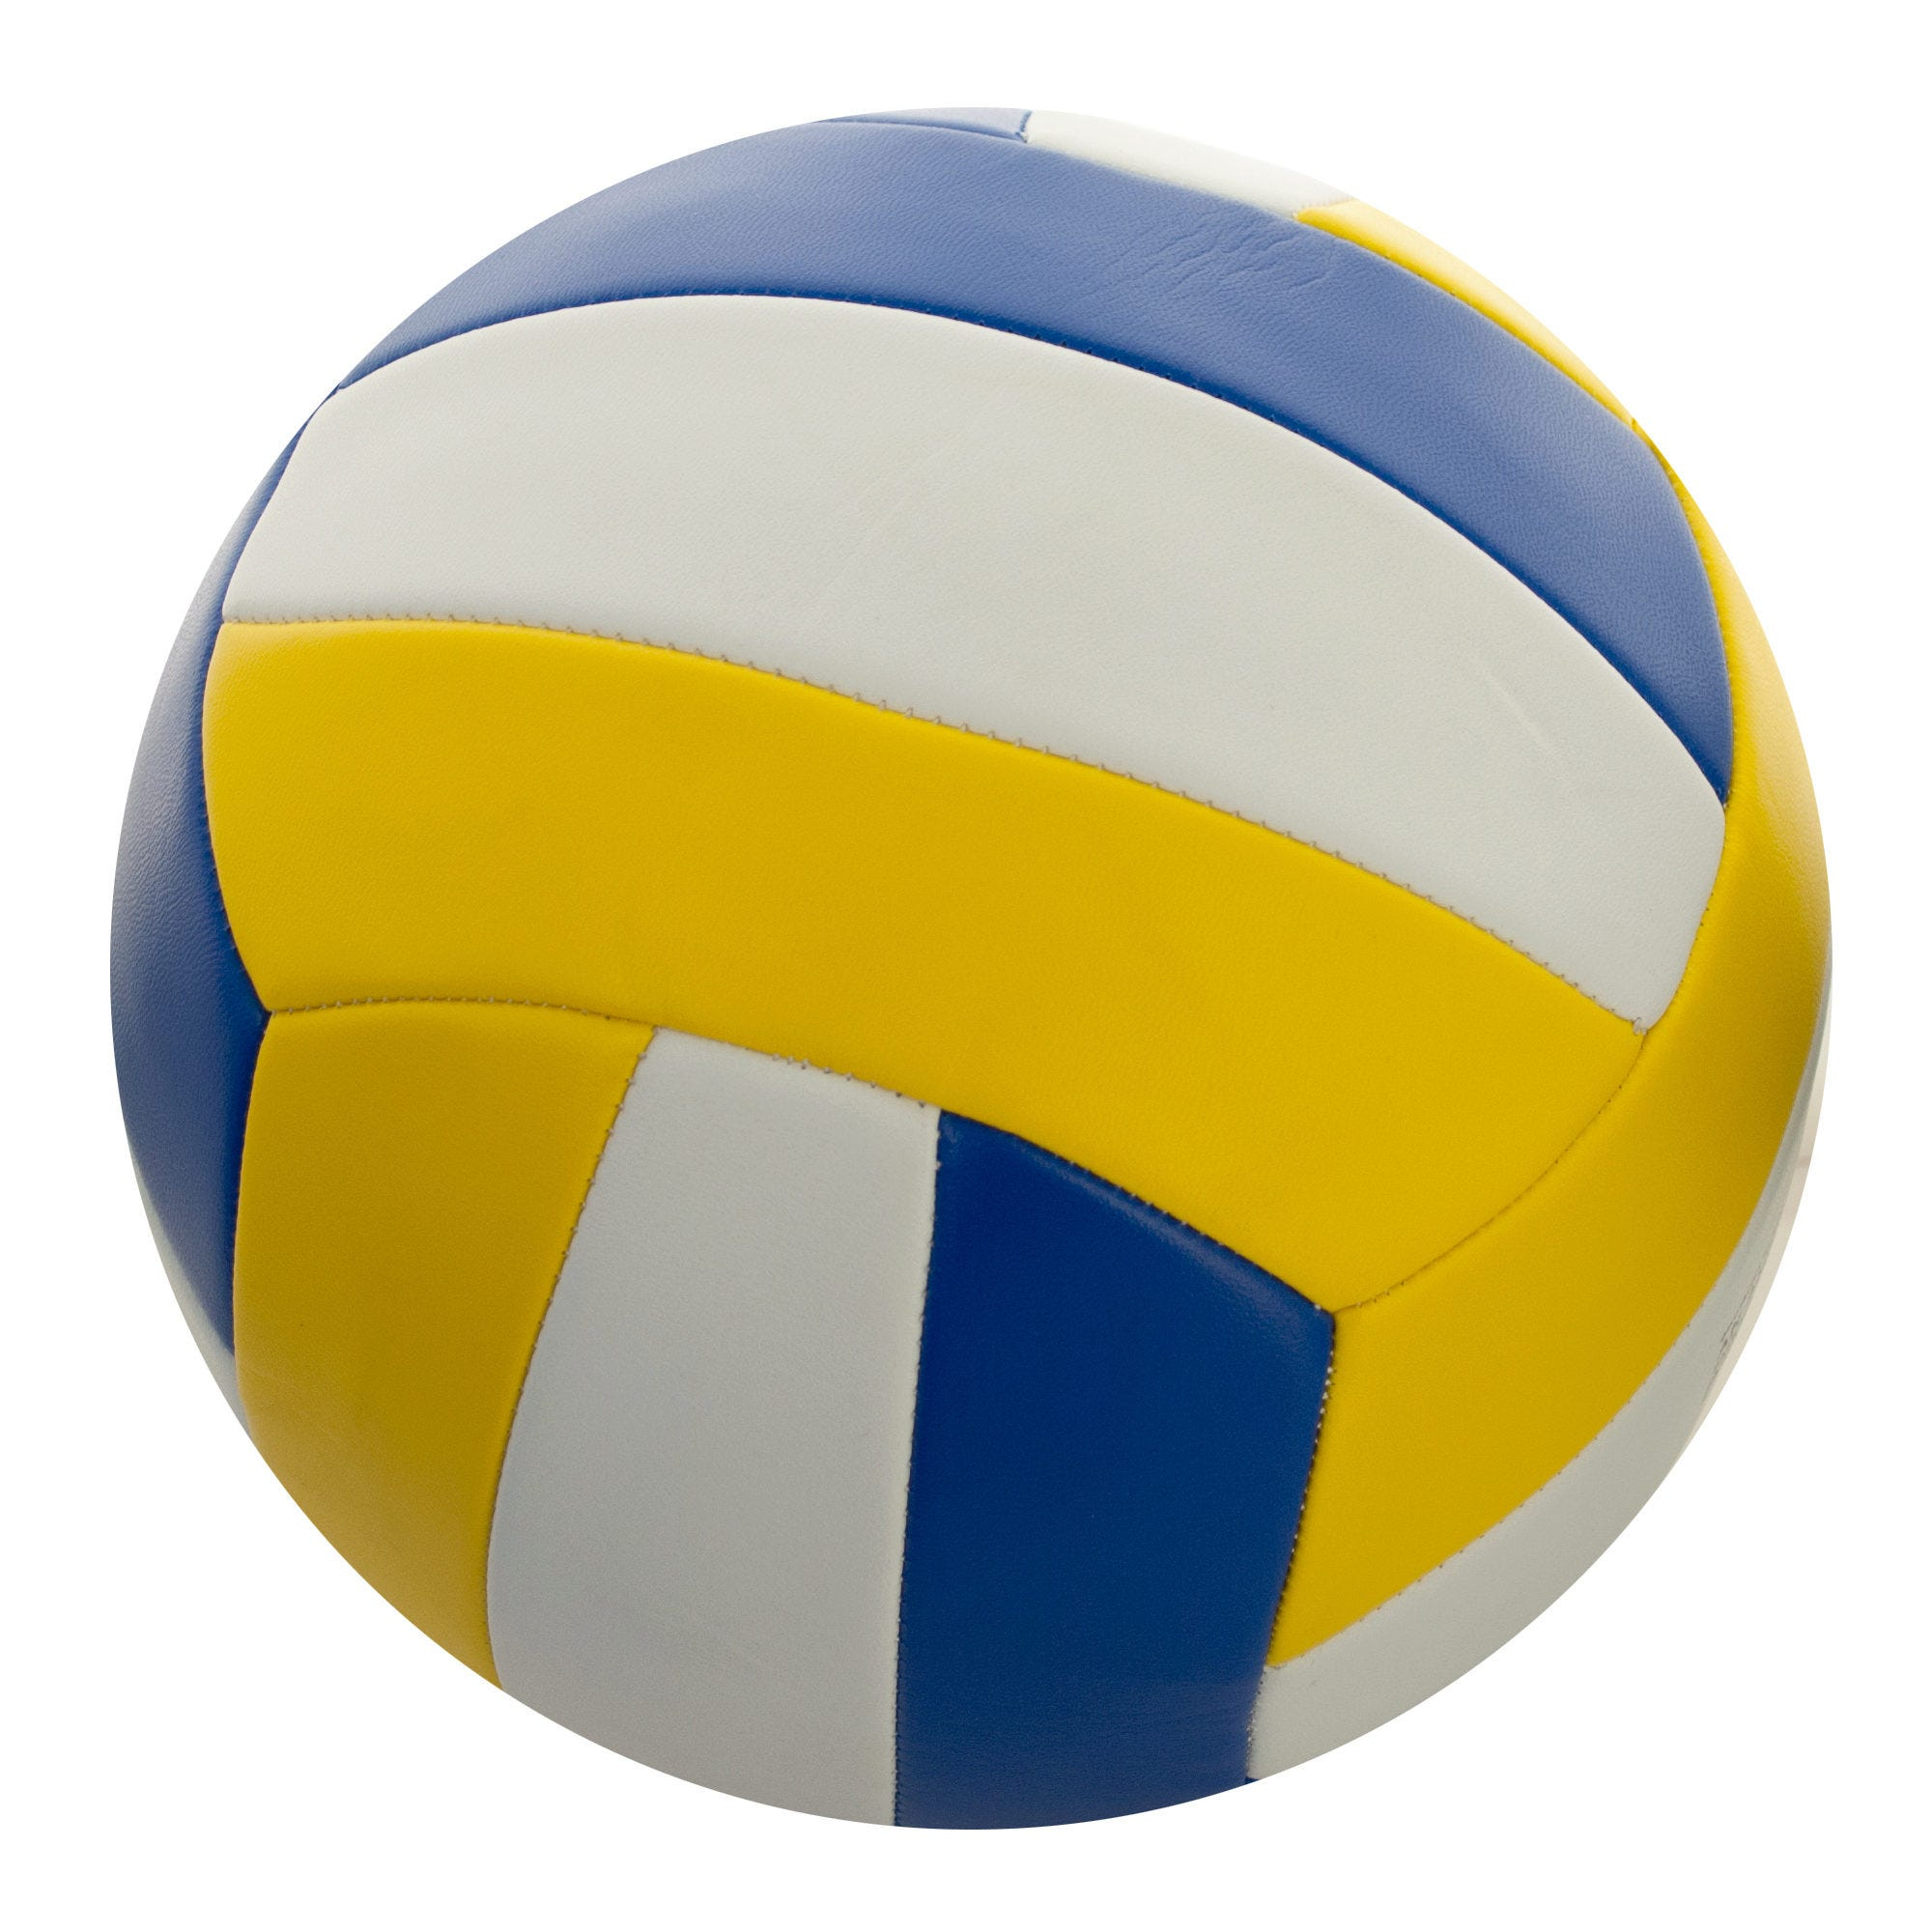 Size 5 Yellow & Blue VOLLEYBALL- Qty 4